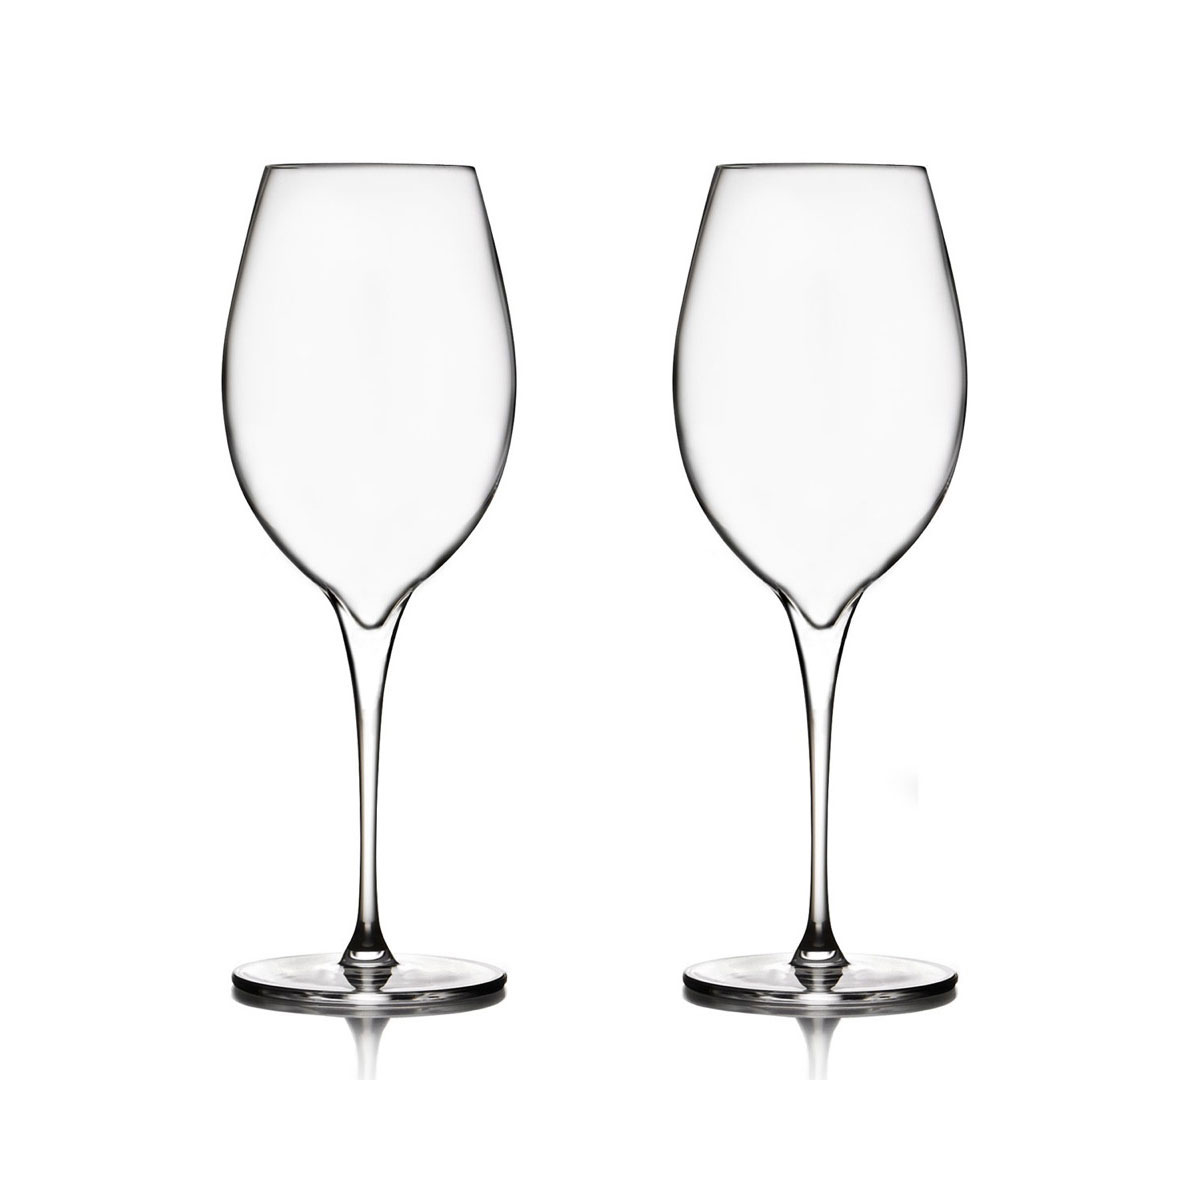 Nambe Vie Pinot Grigio Wine Glasses, Pair